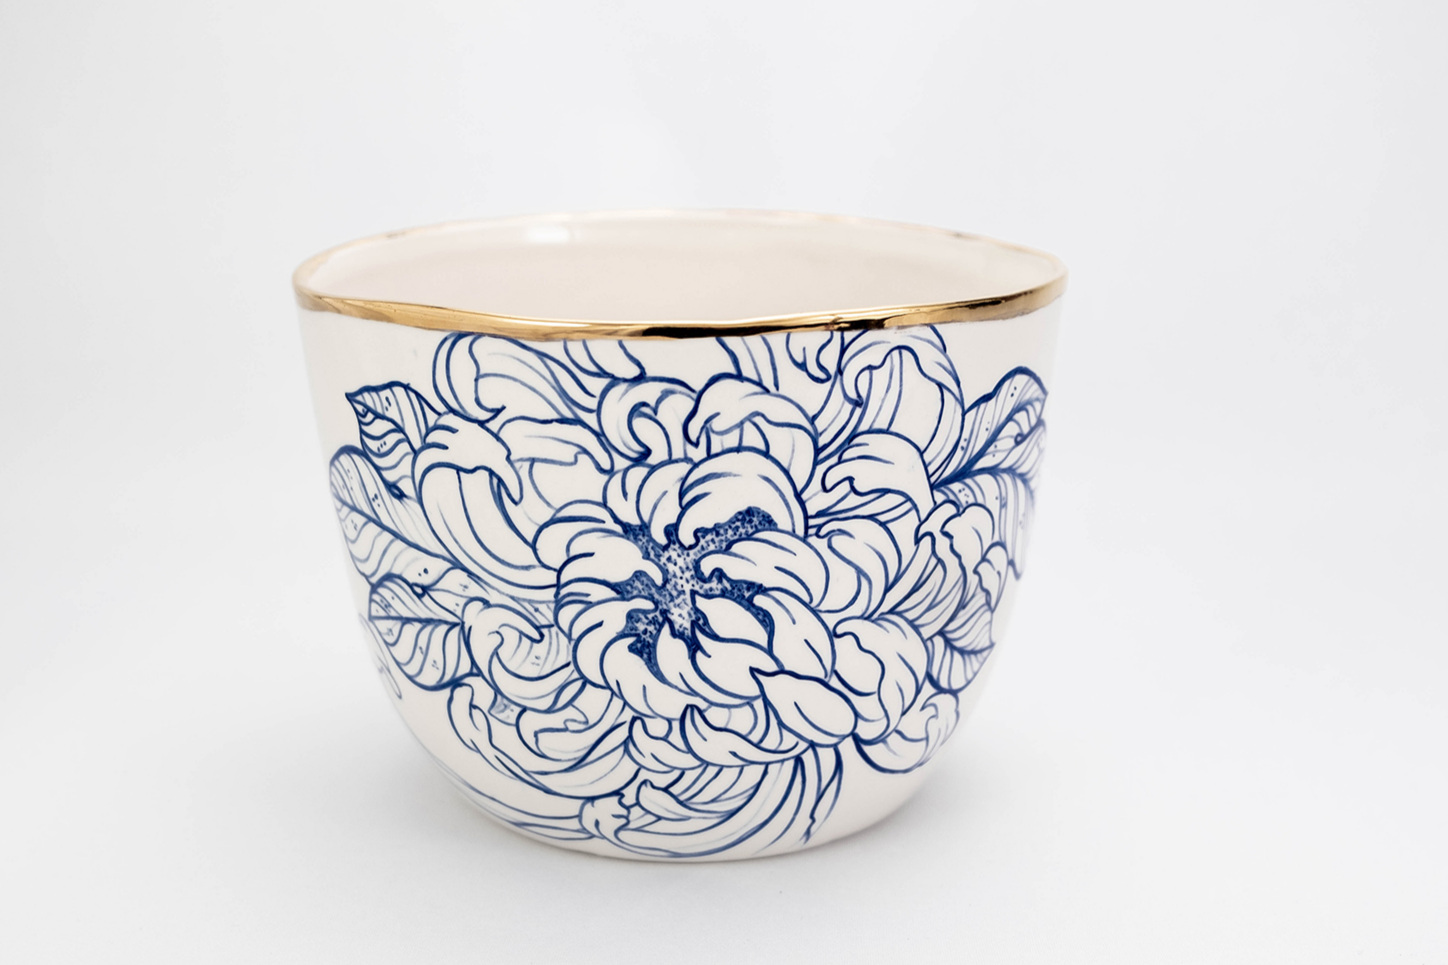 Serving bowl hndpainted porcelain chrysanthemum flower pot high serving bowl gold rim tattoo design luxury made by hand Berlin Antikapratika.jpg